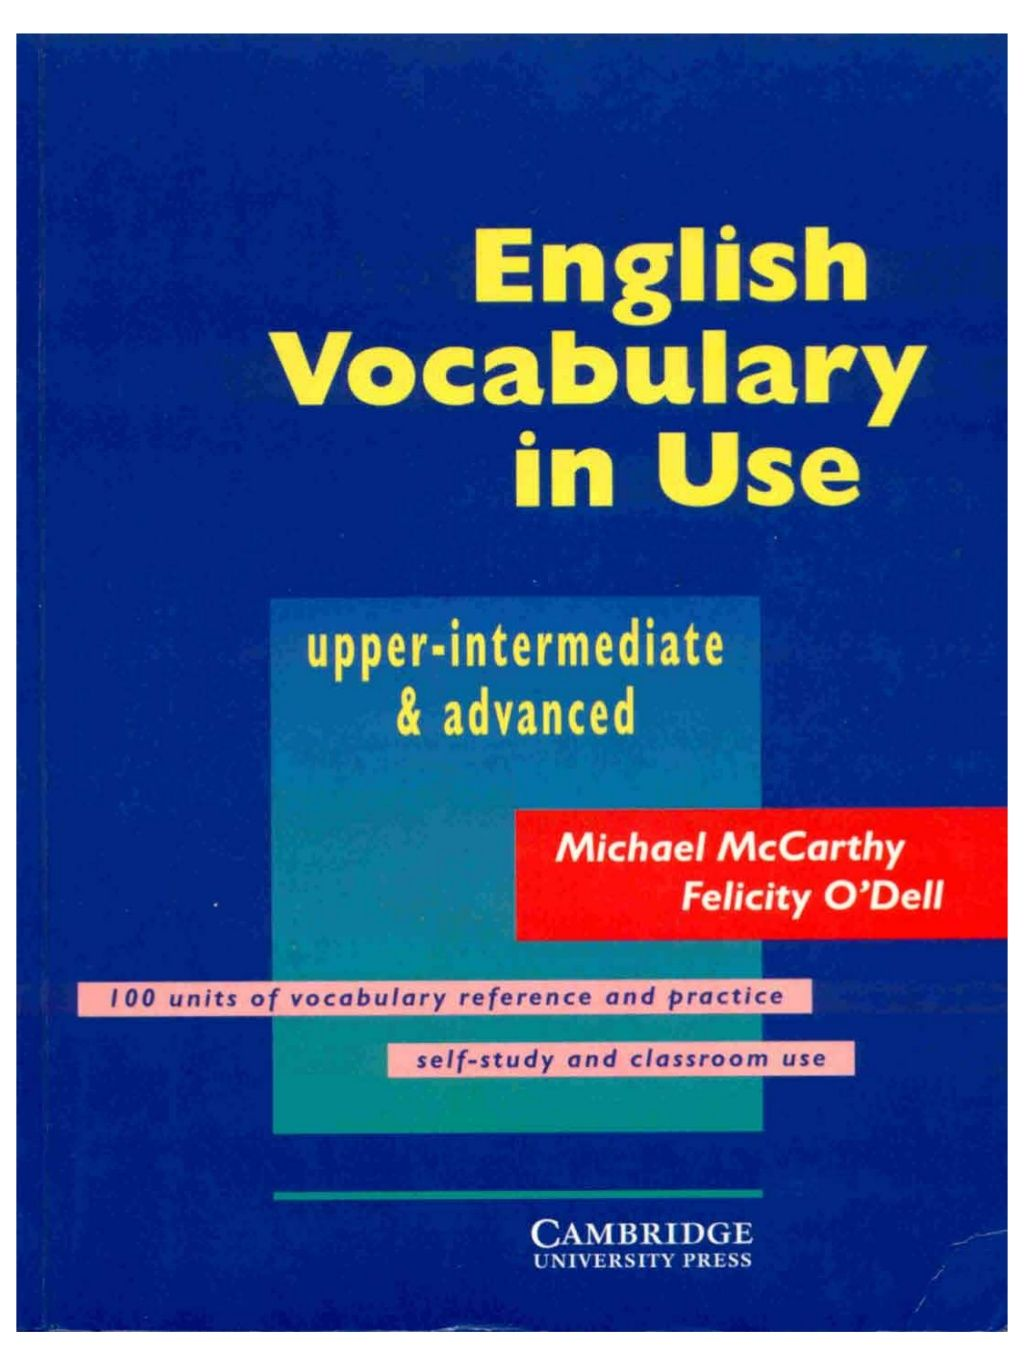 English Vocab In Use Upper Intermediate And Advnaced